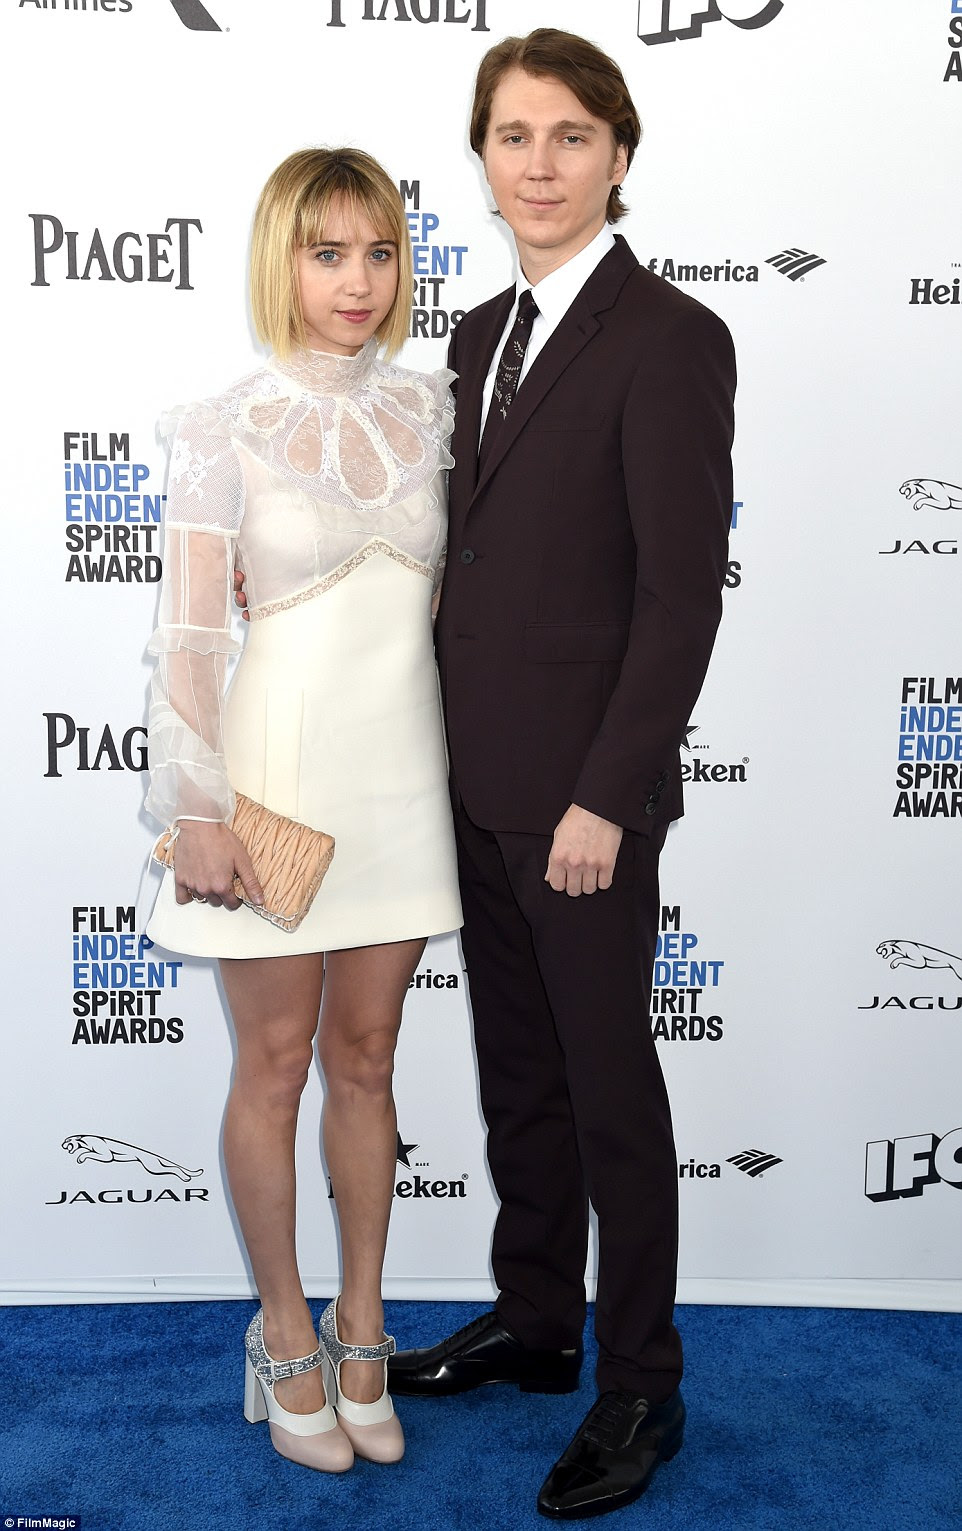 Stylish couple: Paul Dano andZoe Kazan stepped out looking immaculate on the blue carpet